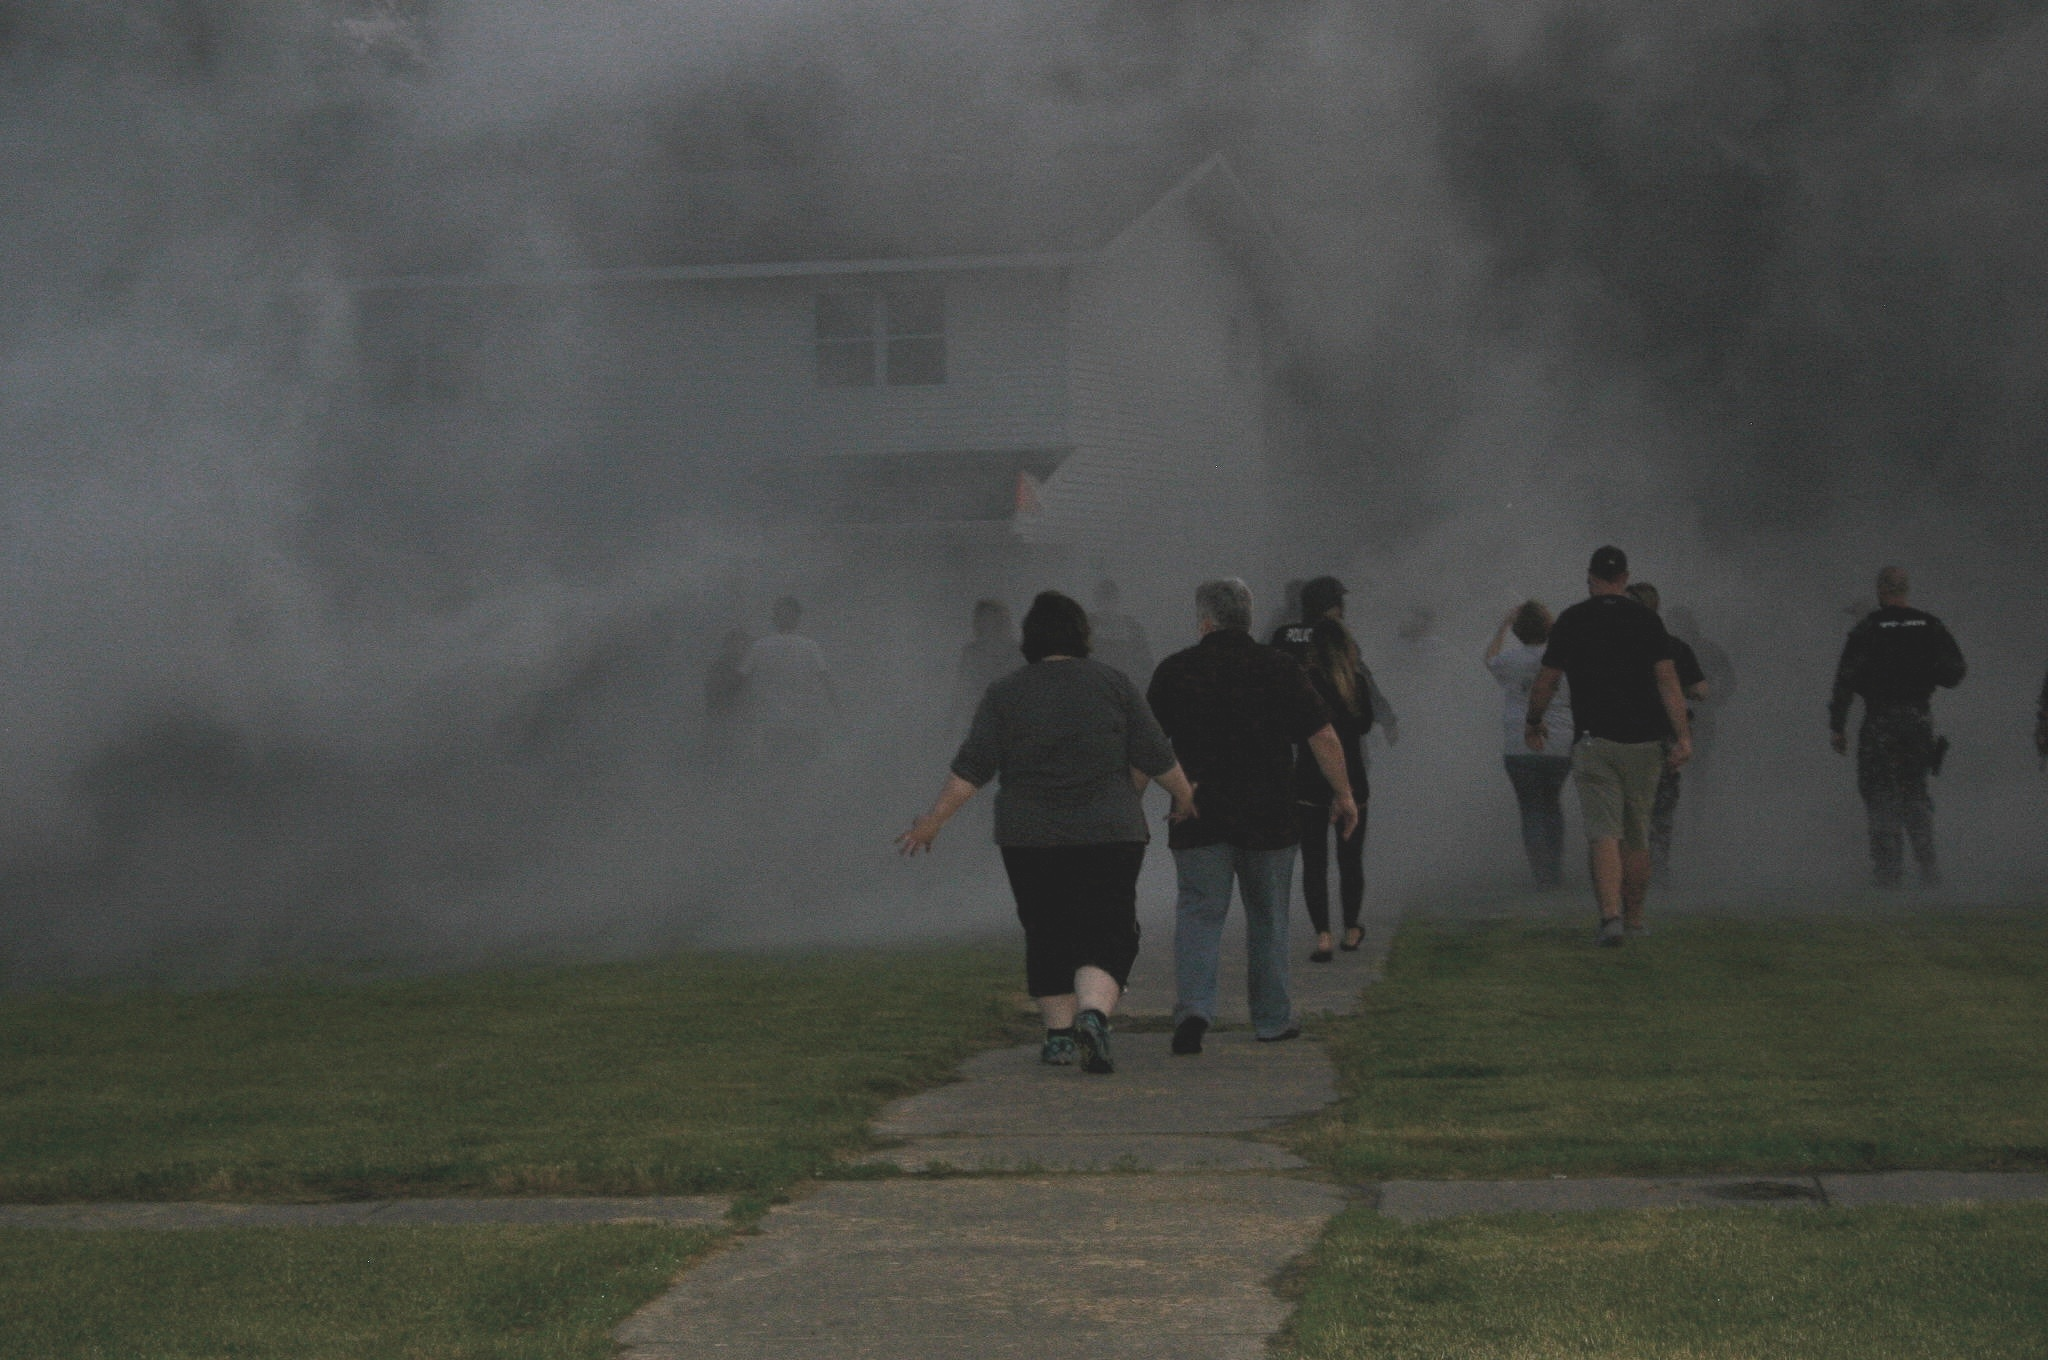 Participants walk into a cloud of smoke from one of SWAT's smoke canisters.